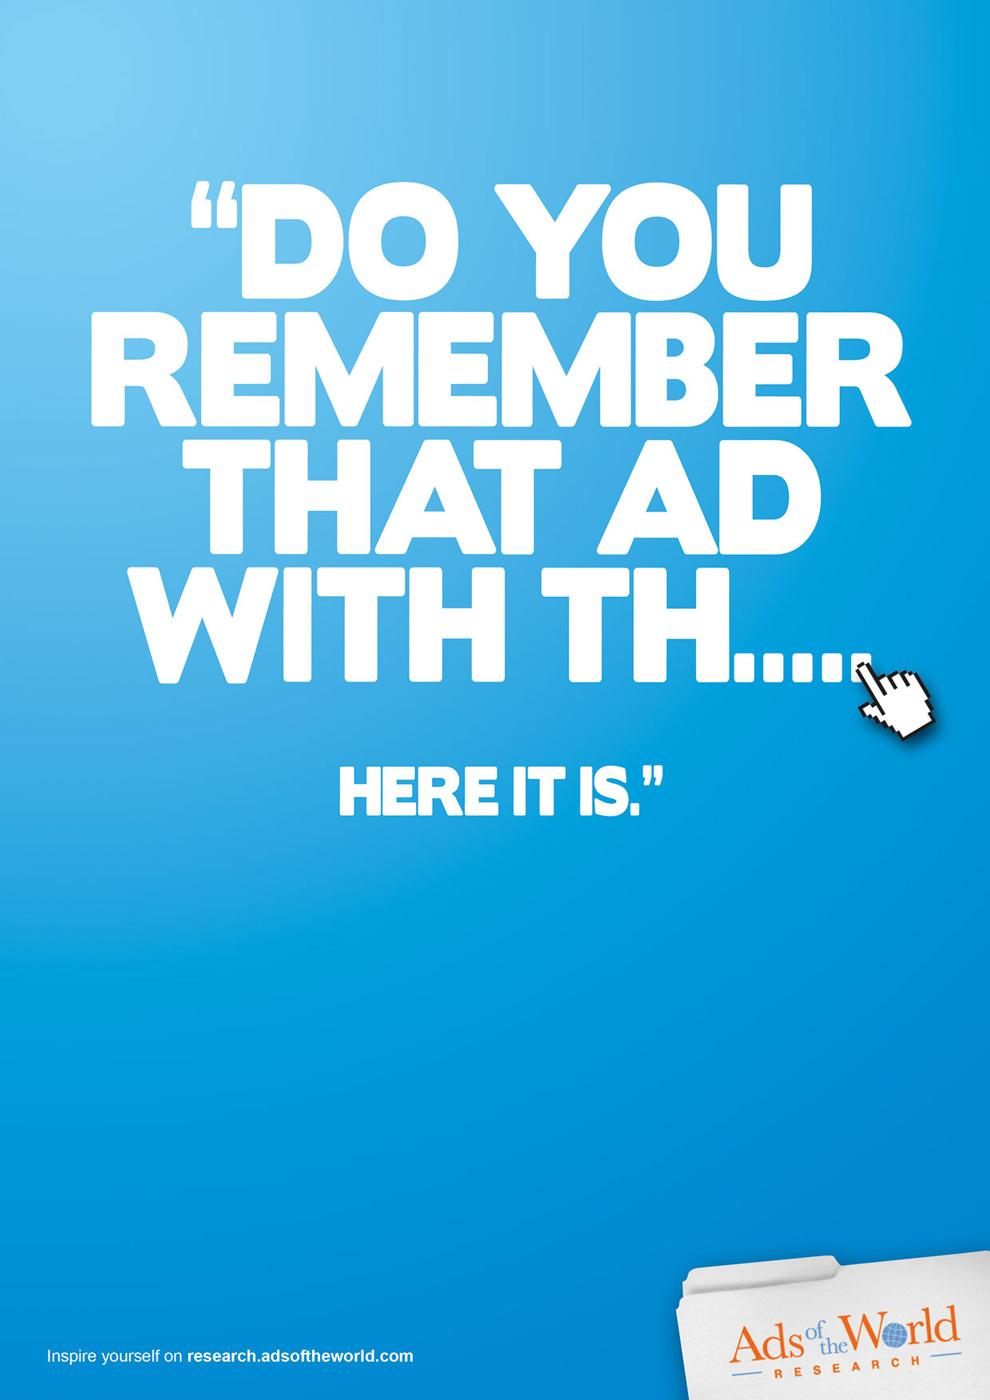 Ads of the World Print Ad -  Remember